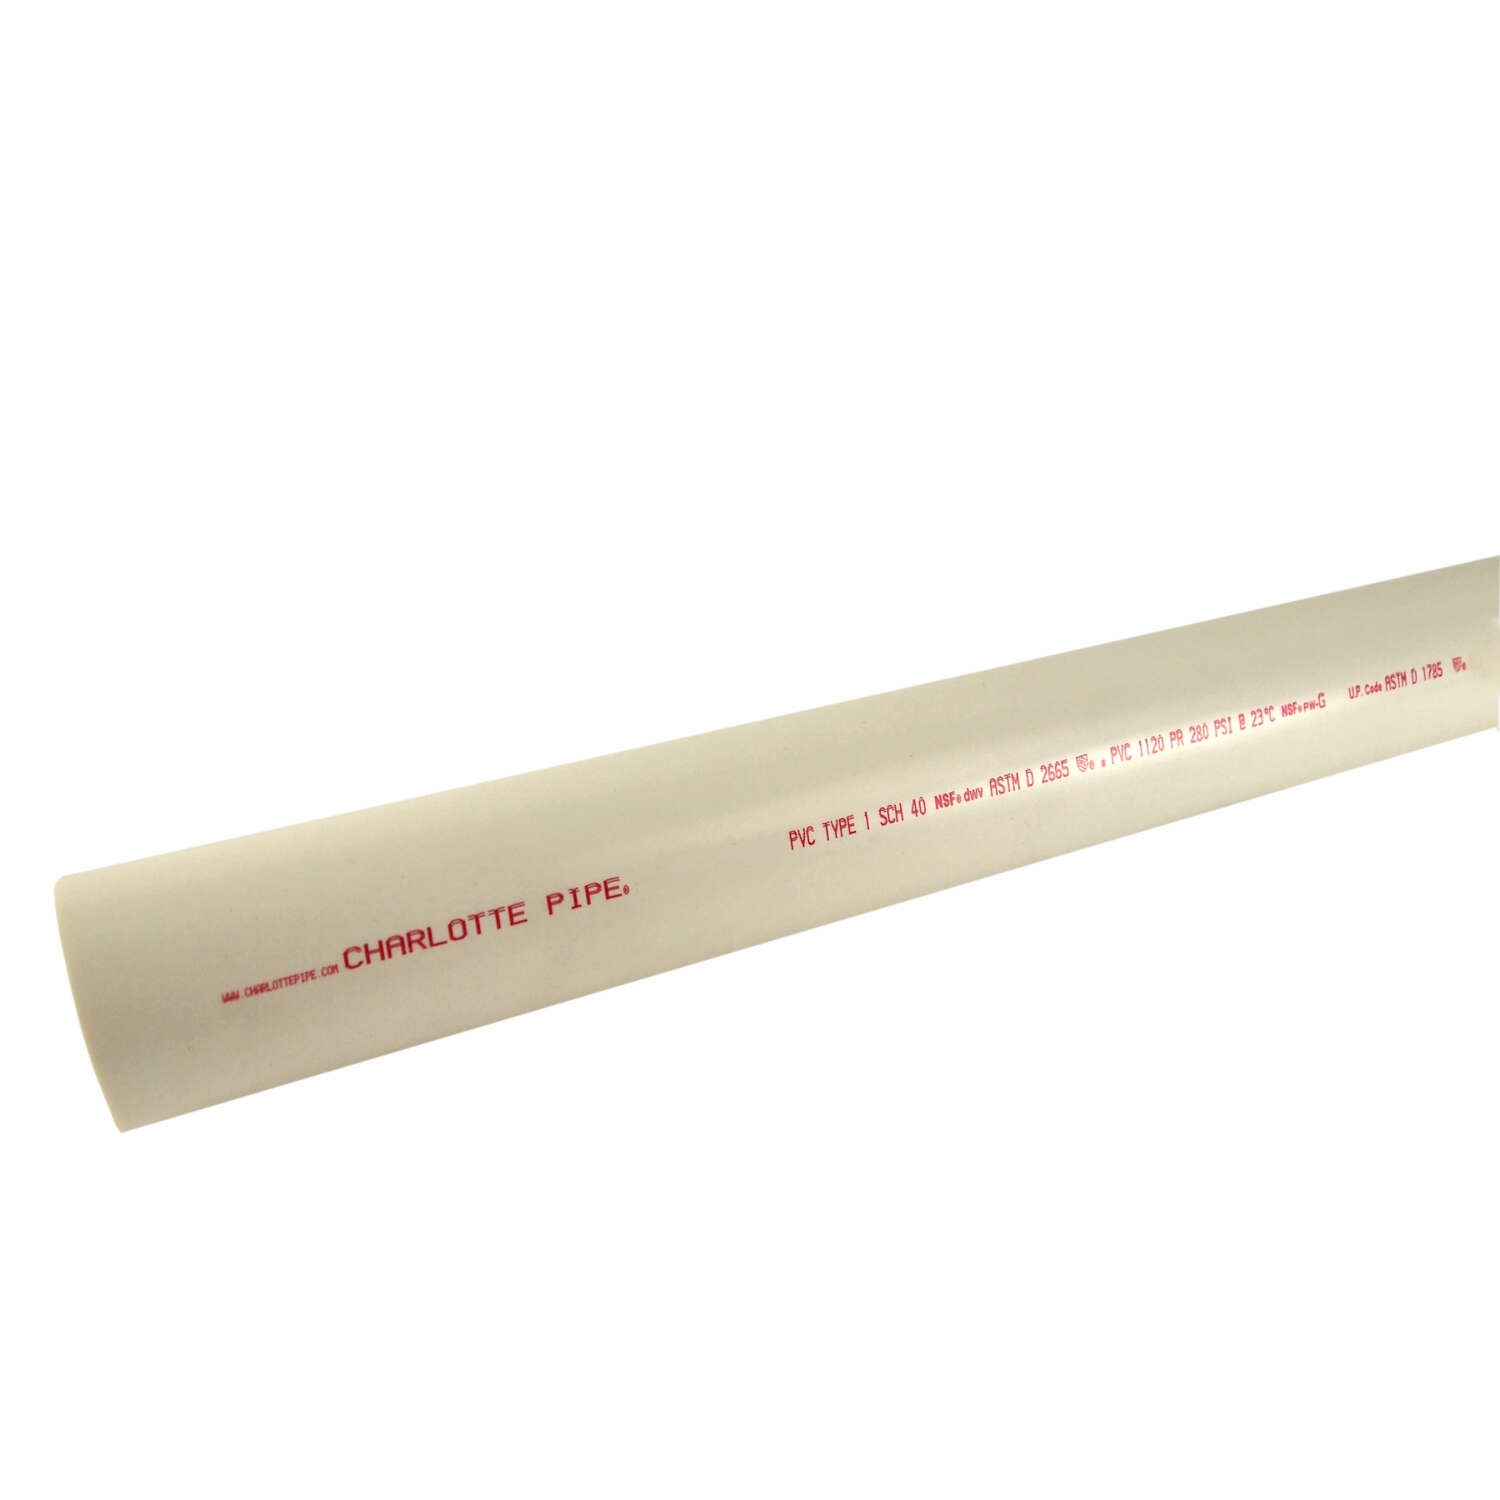 Charlotte Pipe  Schedule 40  PVC  Dual Rated Pipe  3 in. Dia. x 20 ft. L Plain End  260 psi